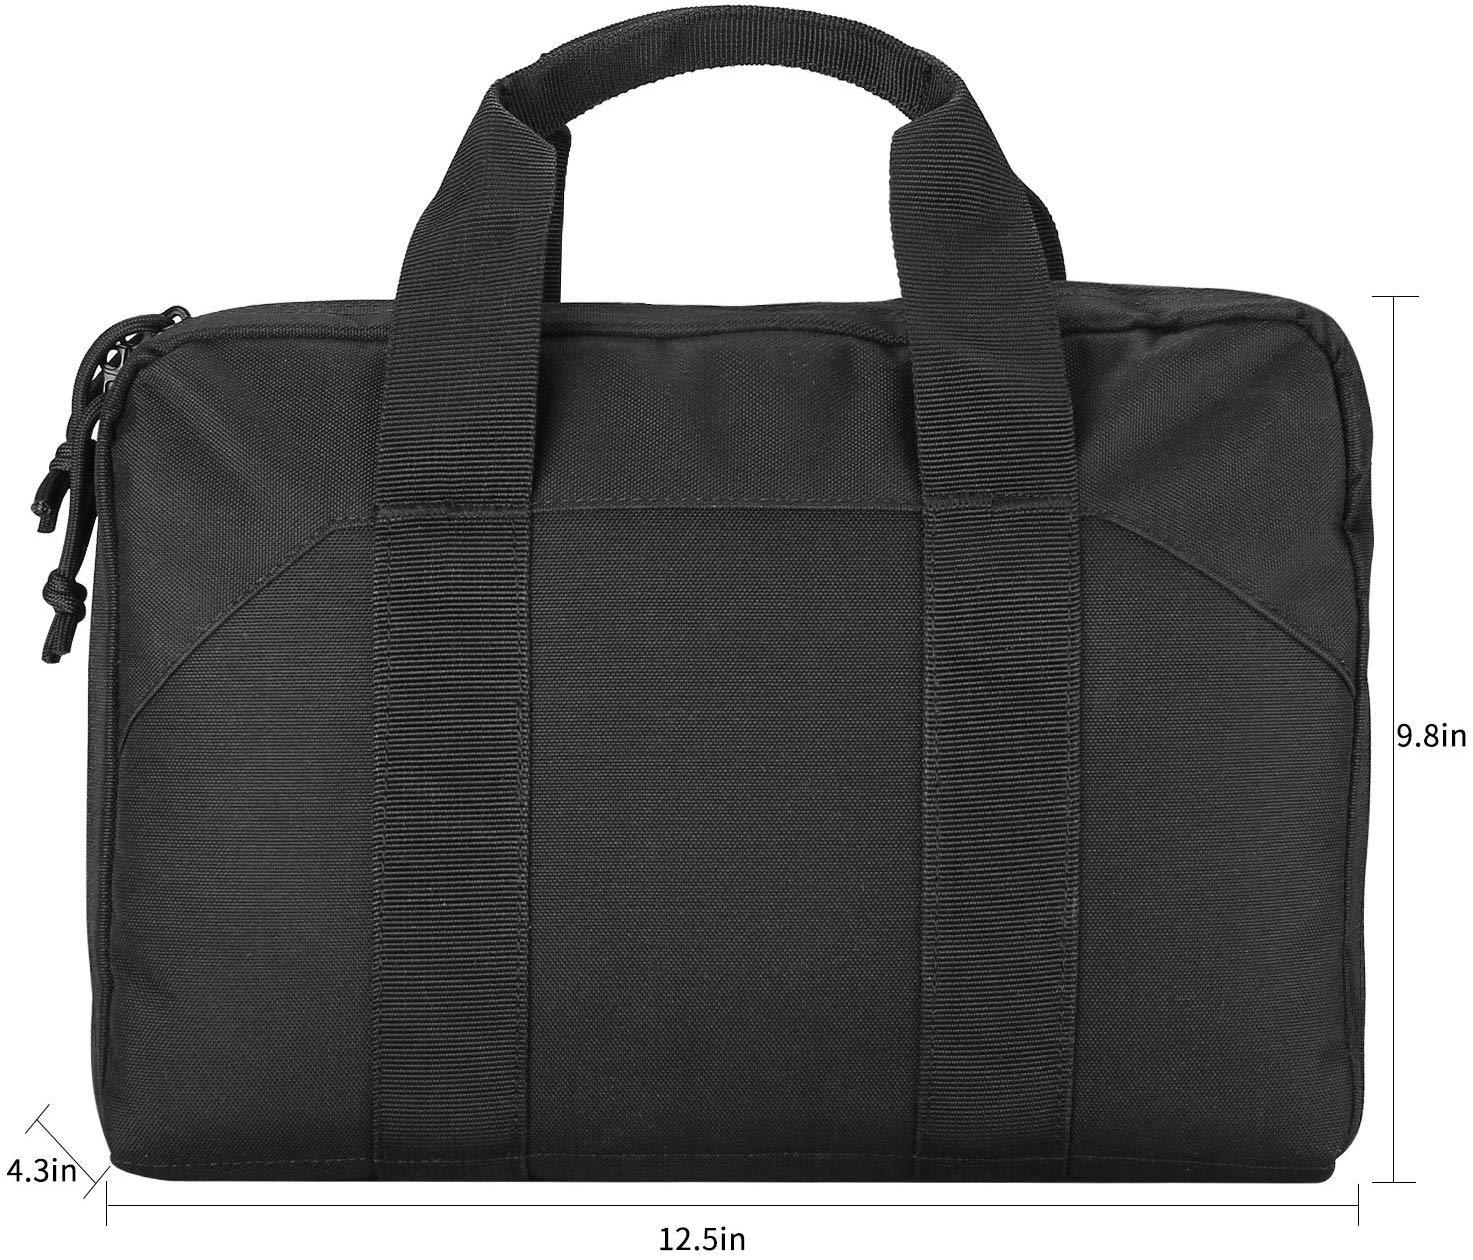 Tactical Pistol Case Shooting Range Duffle Bag | ProCase